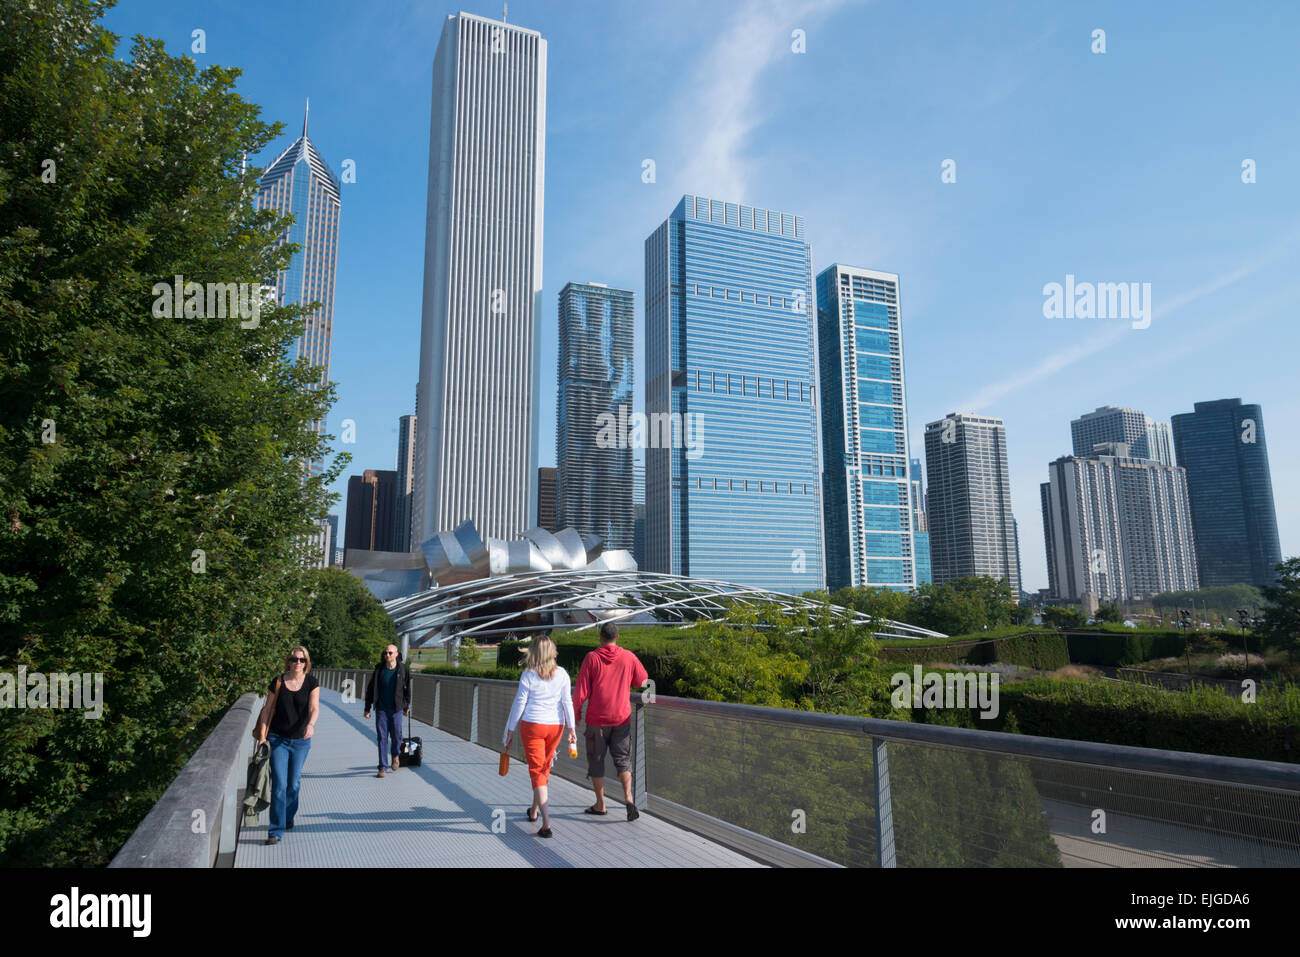 Nichols Bridgeway. Millennium Park. Chicago. Illinois. USA. - Stock Image